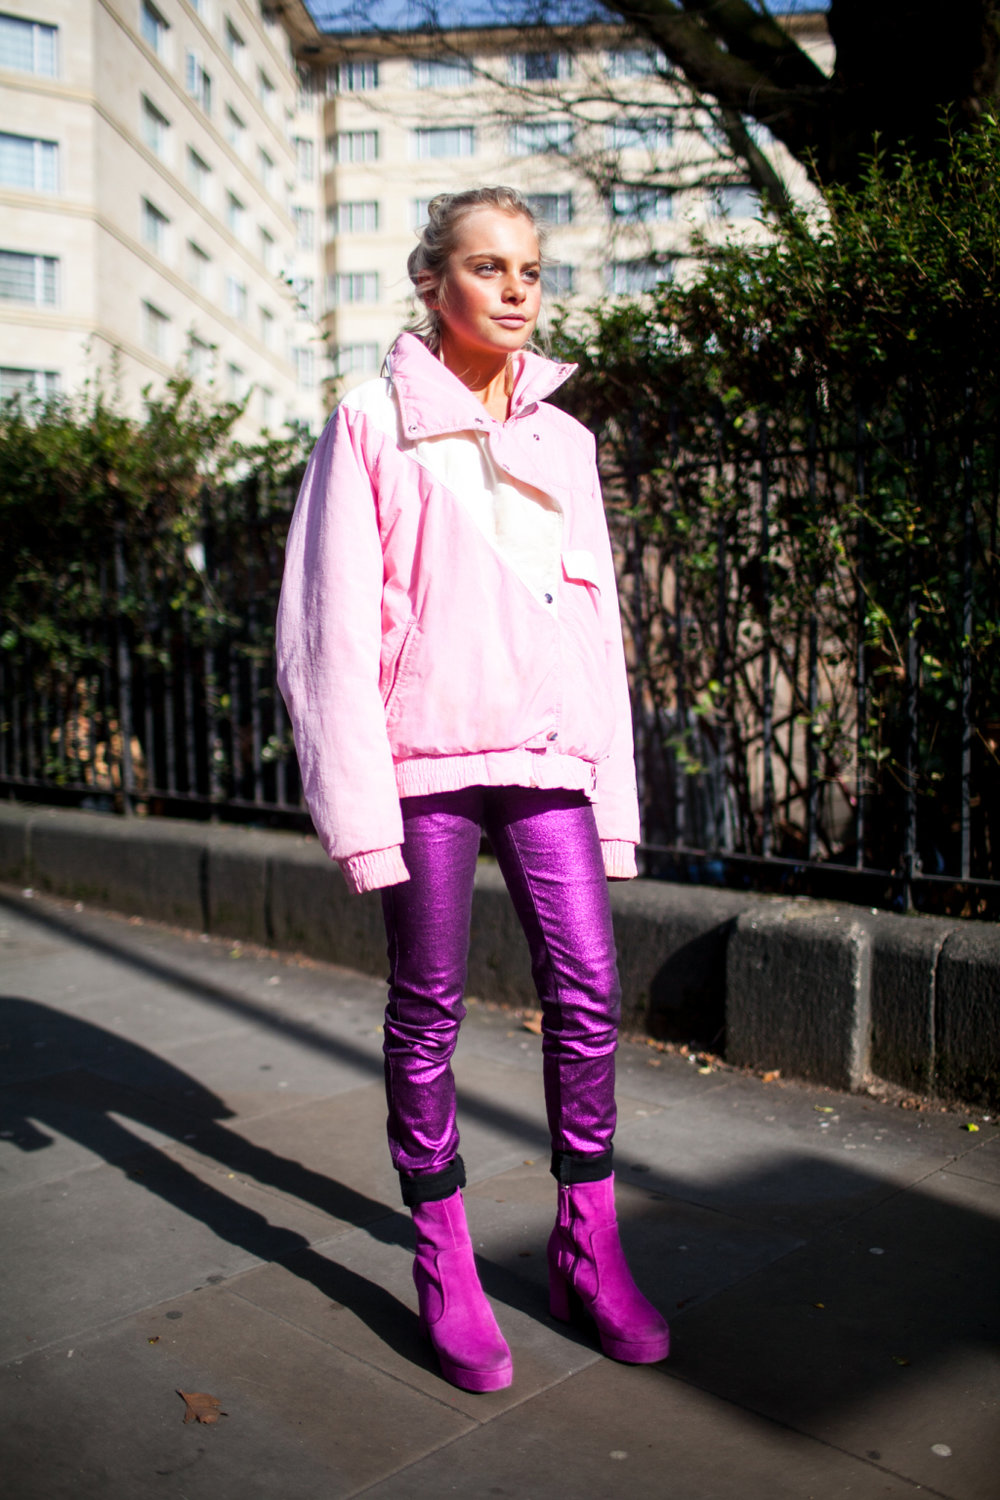 pink-trend-lfw-aw17-street-style-london-fashion-week-photos-05.jpg